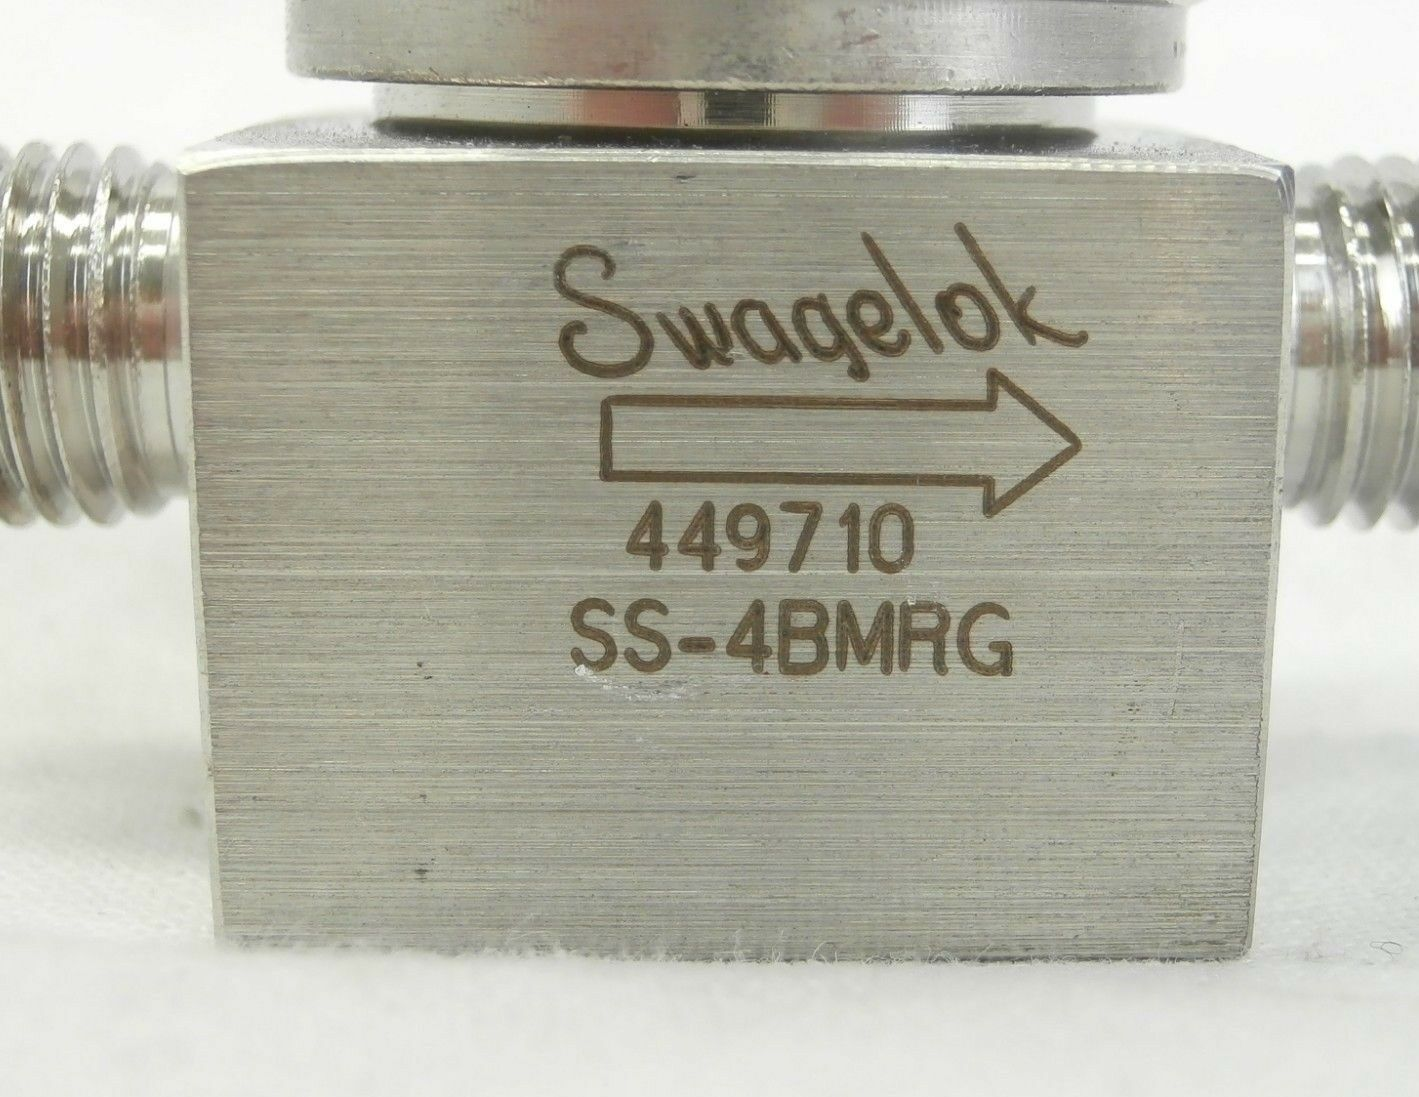 Swagelok SS-4BMRG Bellows Sealed Metering Valve NUPRO Used Working